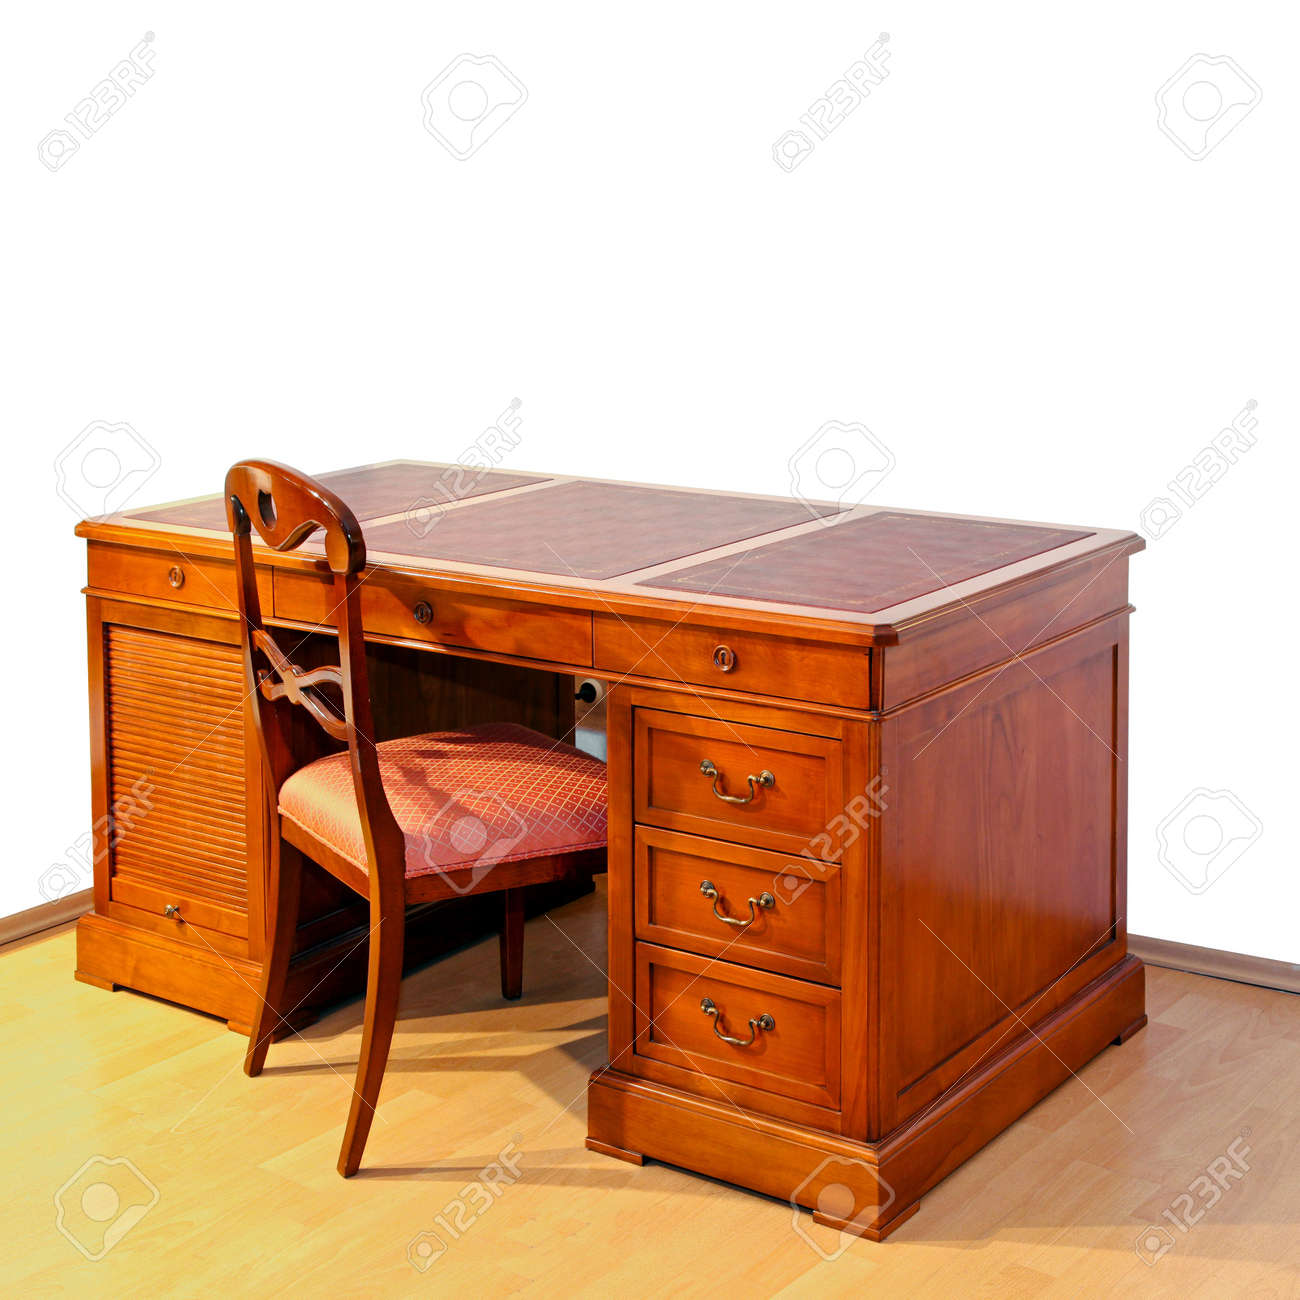 Uncategorized Antique Work Desk very old wooden work desk with chair stock photo picture and 9243149